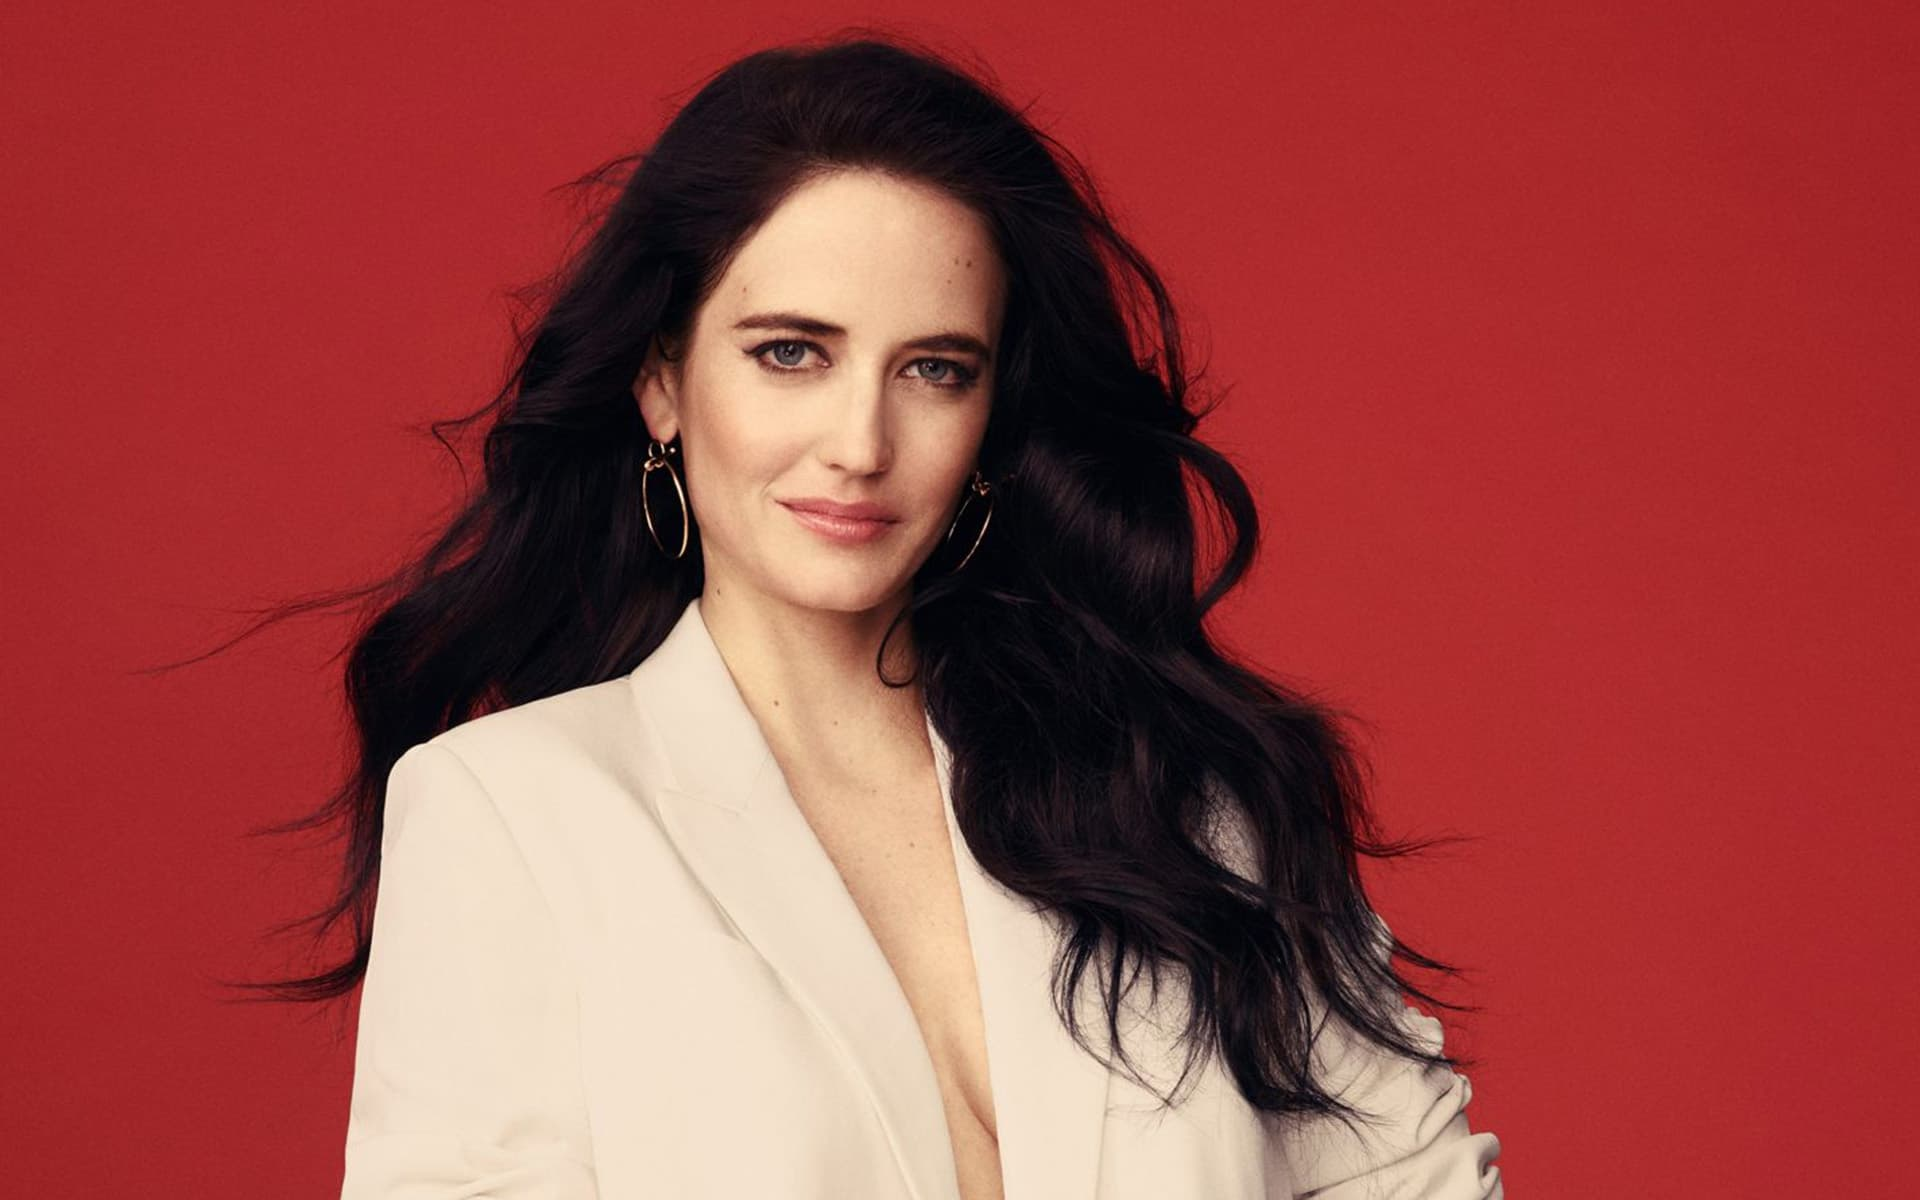 Eva Green Wallpapers HD, Photos Images and Pictures for Desktop